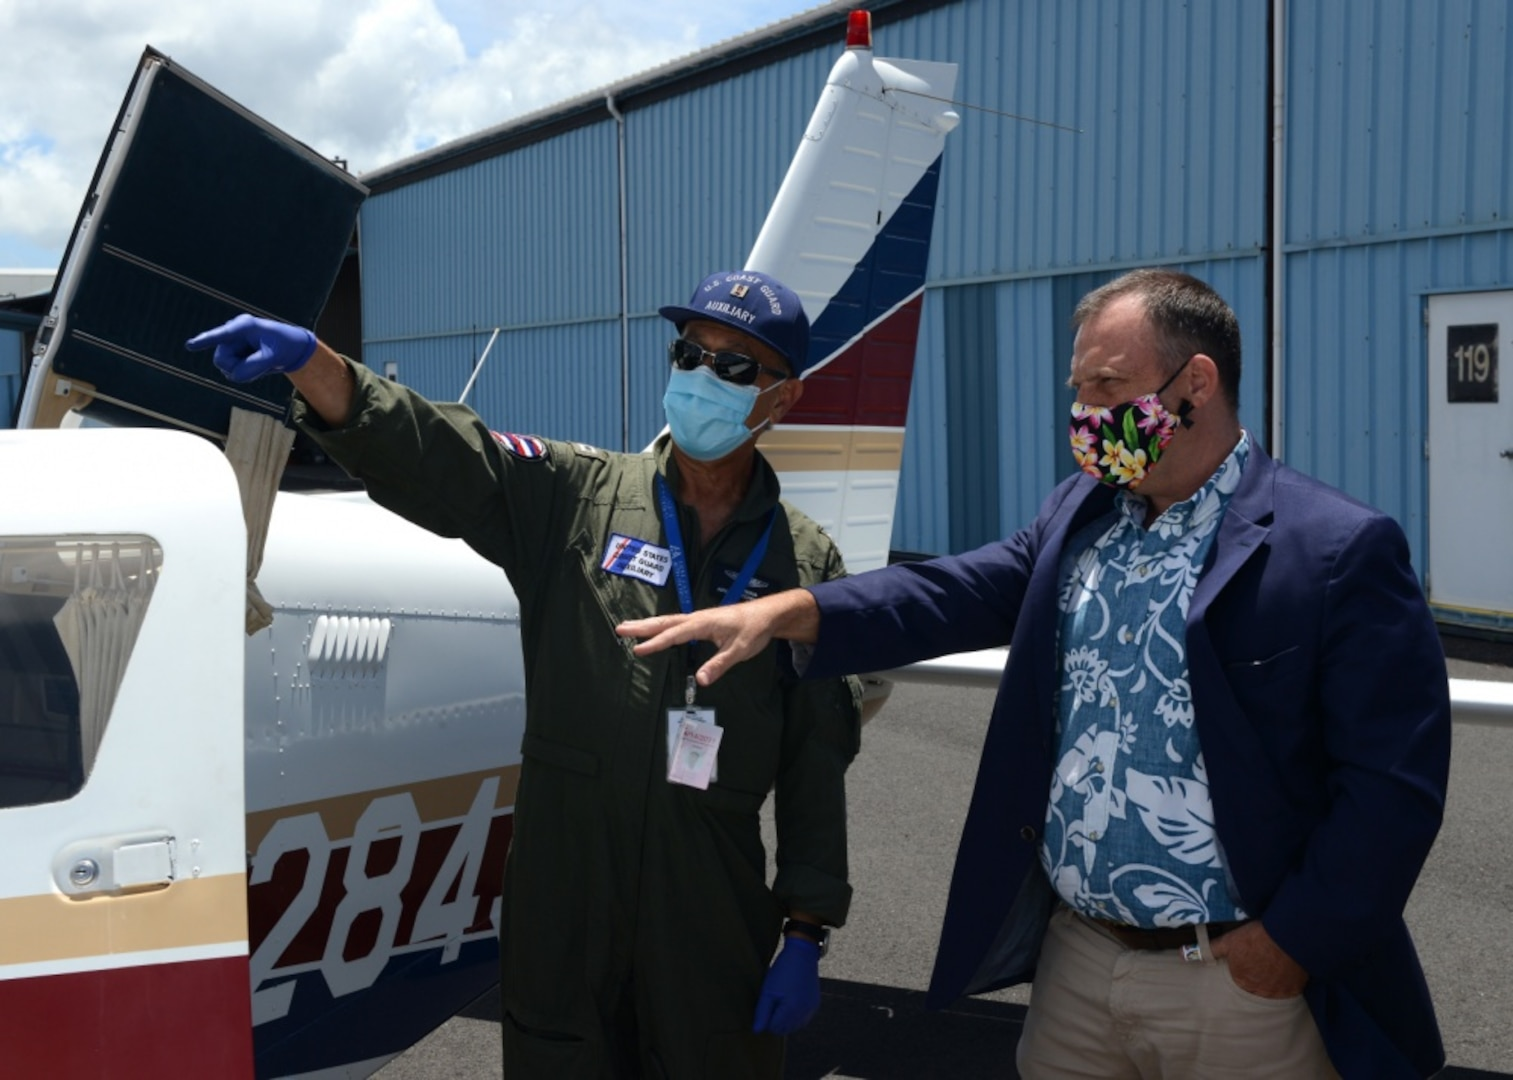 Coast Guard Auxiliarist Bob Emami and Lt. Gov. Josh Green of Hawaii load masks aboard a Coast Guard Auxiliary airplane at Daniel K. Inouye International Airport, Hawaii, May 28, 2020. Two Coast Guard Auxiliary airplanes transported 60,000 masks to Maui as part of the state of Hawaii's COVID-19 pandemic response. (U.S. Coast Guard photo by Petty Officer 3rd Class Matthew West/Released)